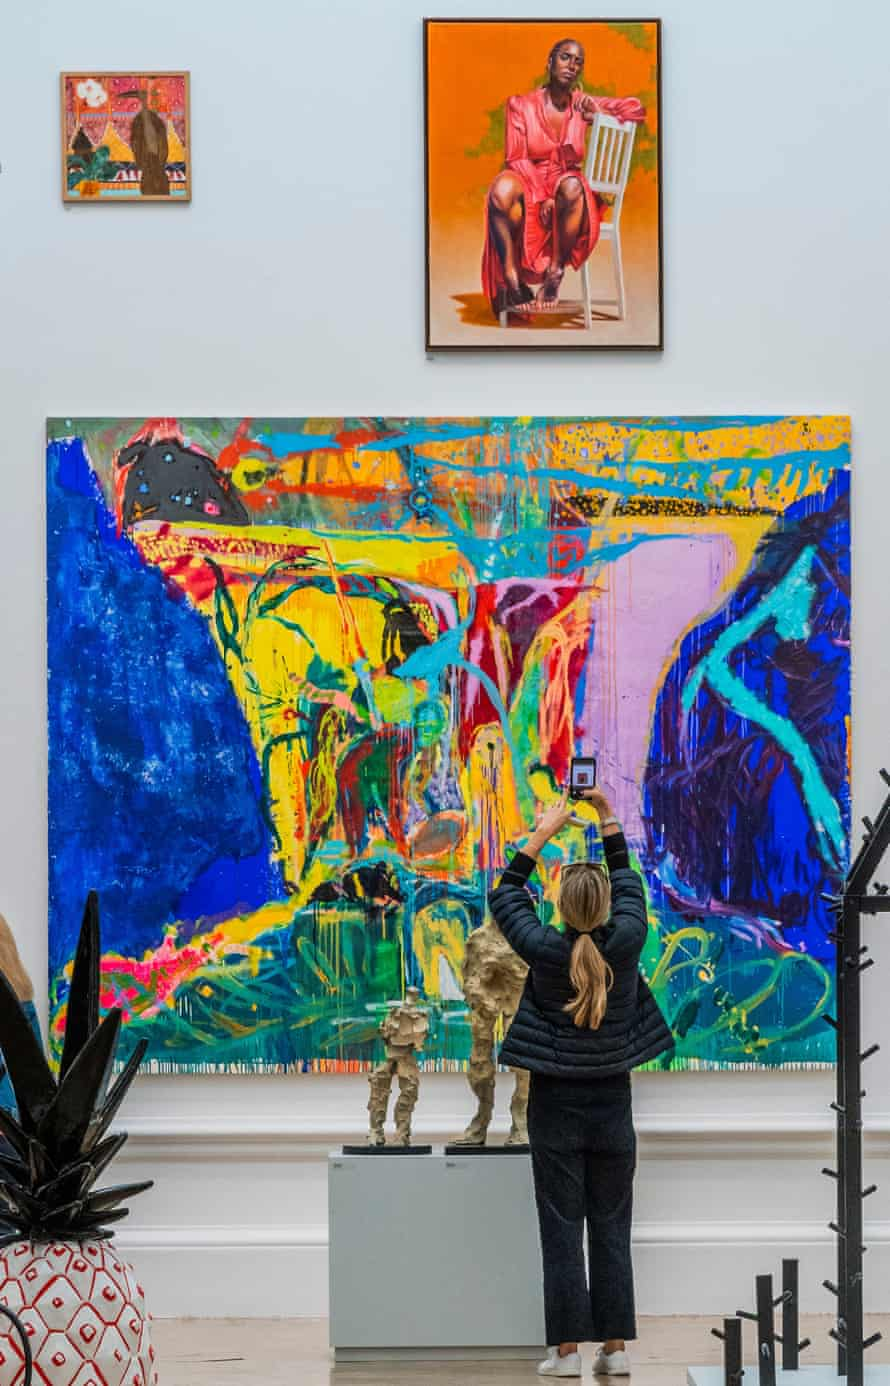 Isio Shift by Joshua Uvieghara and other works at the Royal Academy's Summer 2021 Summer Exhibition.